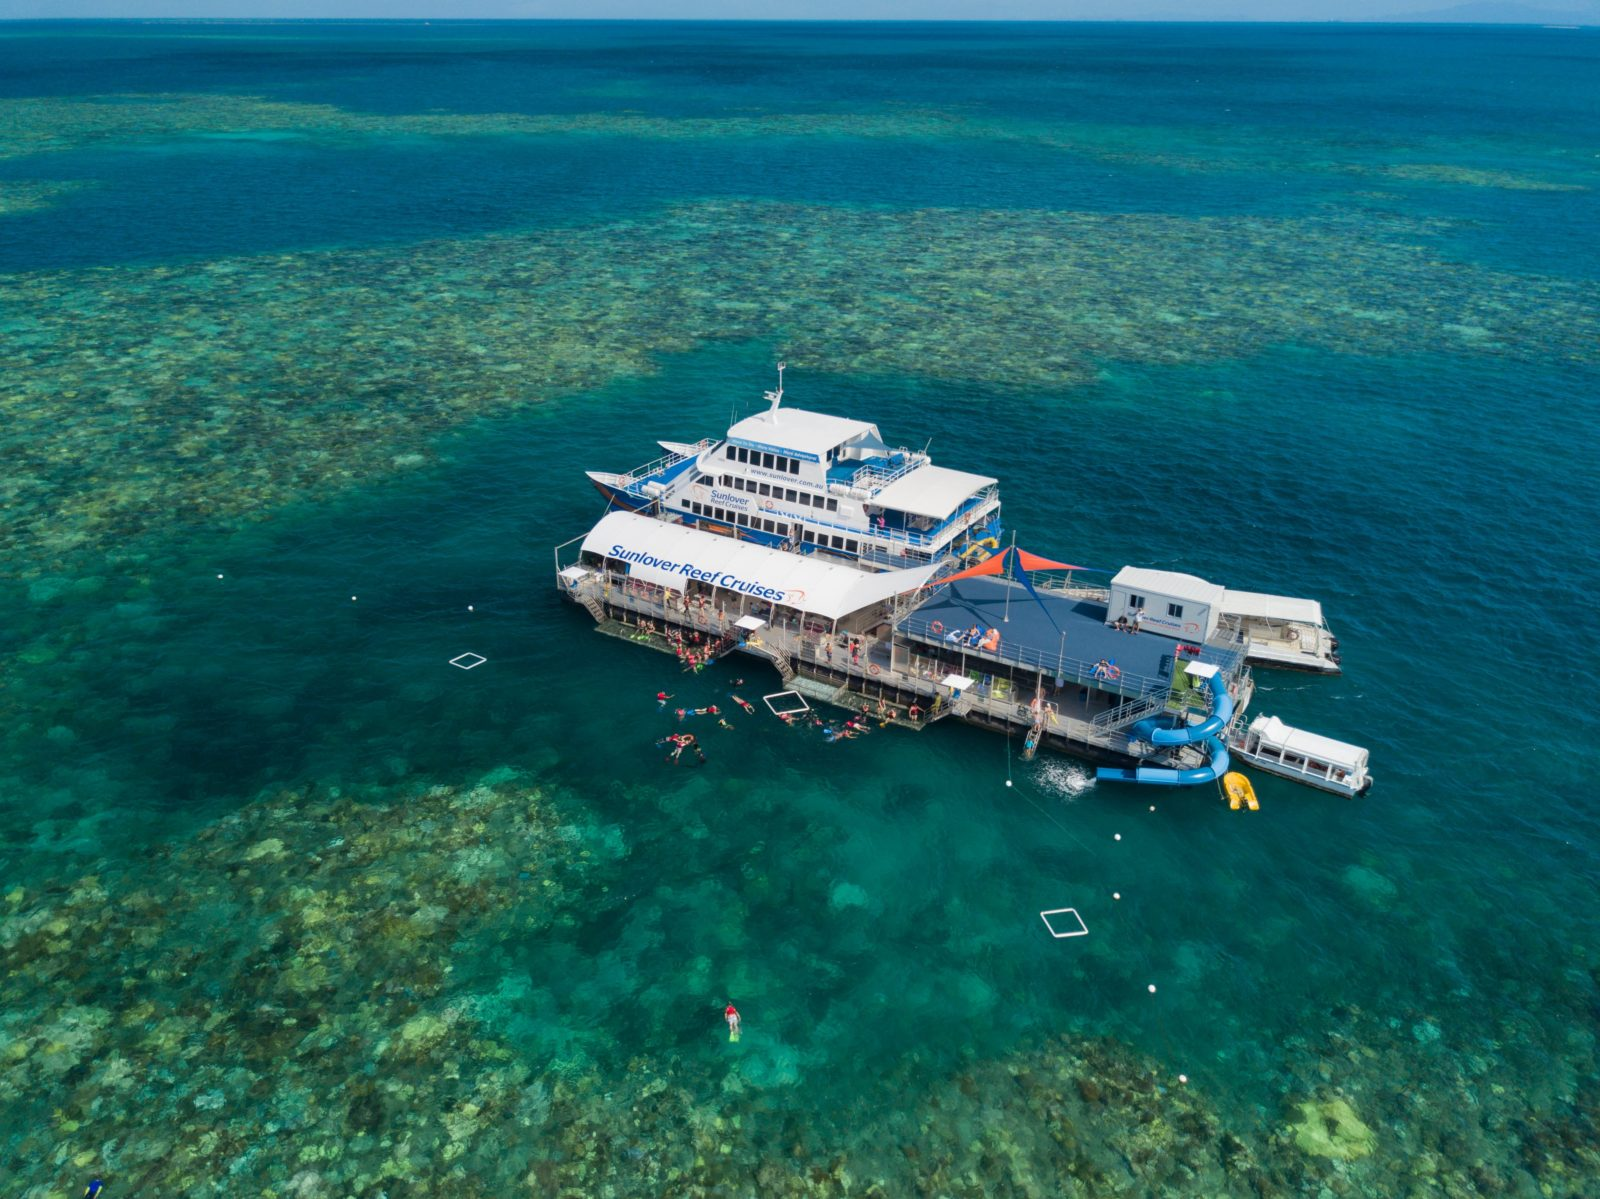 Sunlover Reef Cruises brand new multi-level pontoon, with theme park waterslide and large sundeck